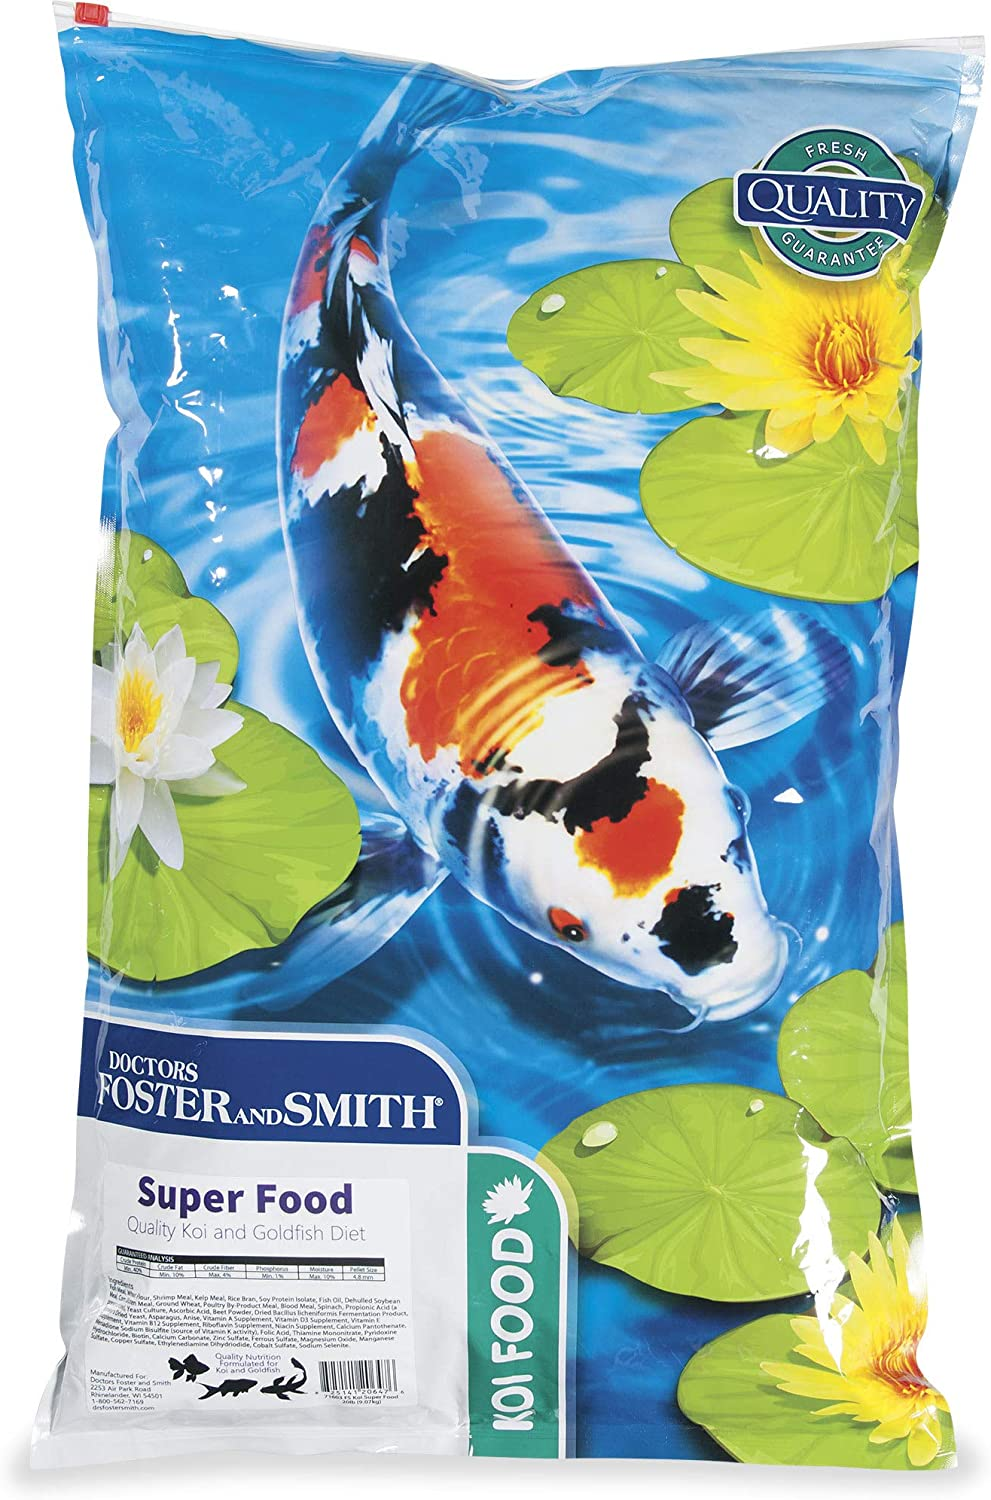 DRS. Foster and Smith Super Food Quality Koi and Goldfish Food, 20 lbs.